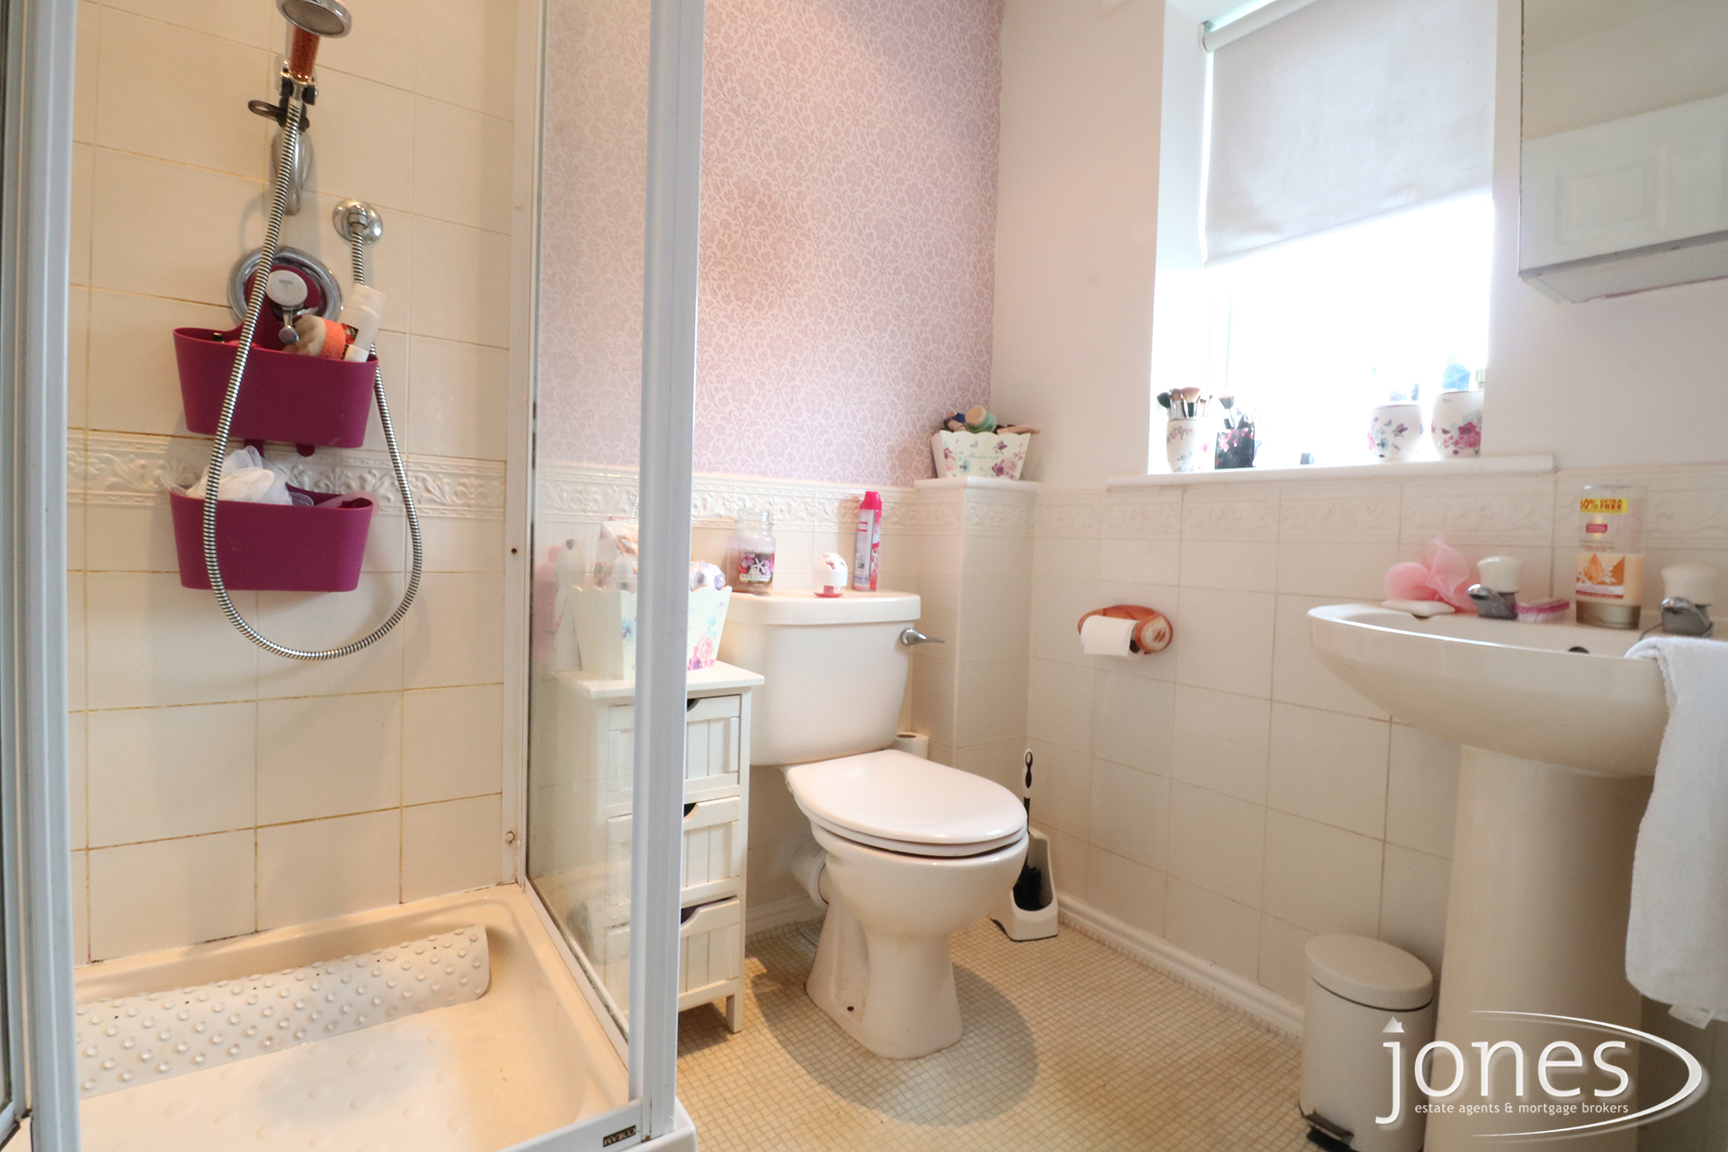 Home for Sale Let - Photo 12 West End Way , Low Hartburn,Stockton on Tees,TS18 3UA